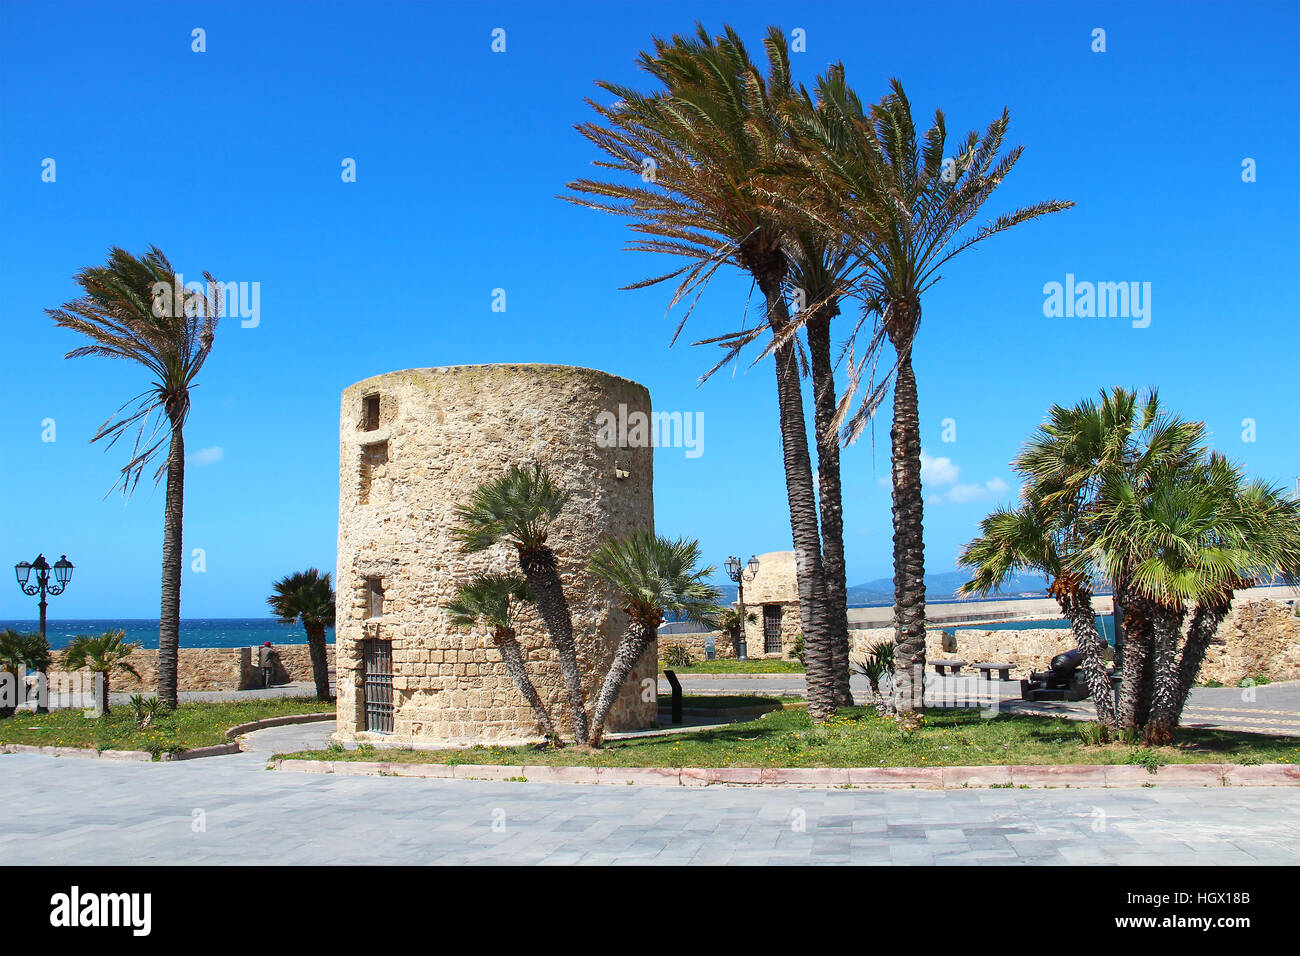 Fortification tower and walls in Alghero old town, Sardinia, Italy - Stock Image